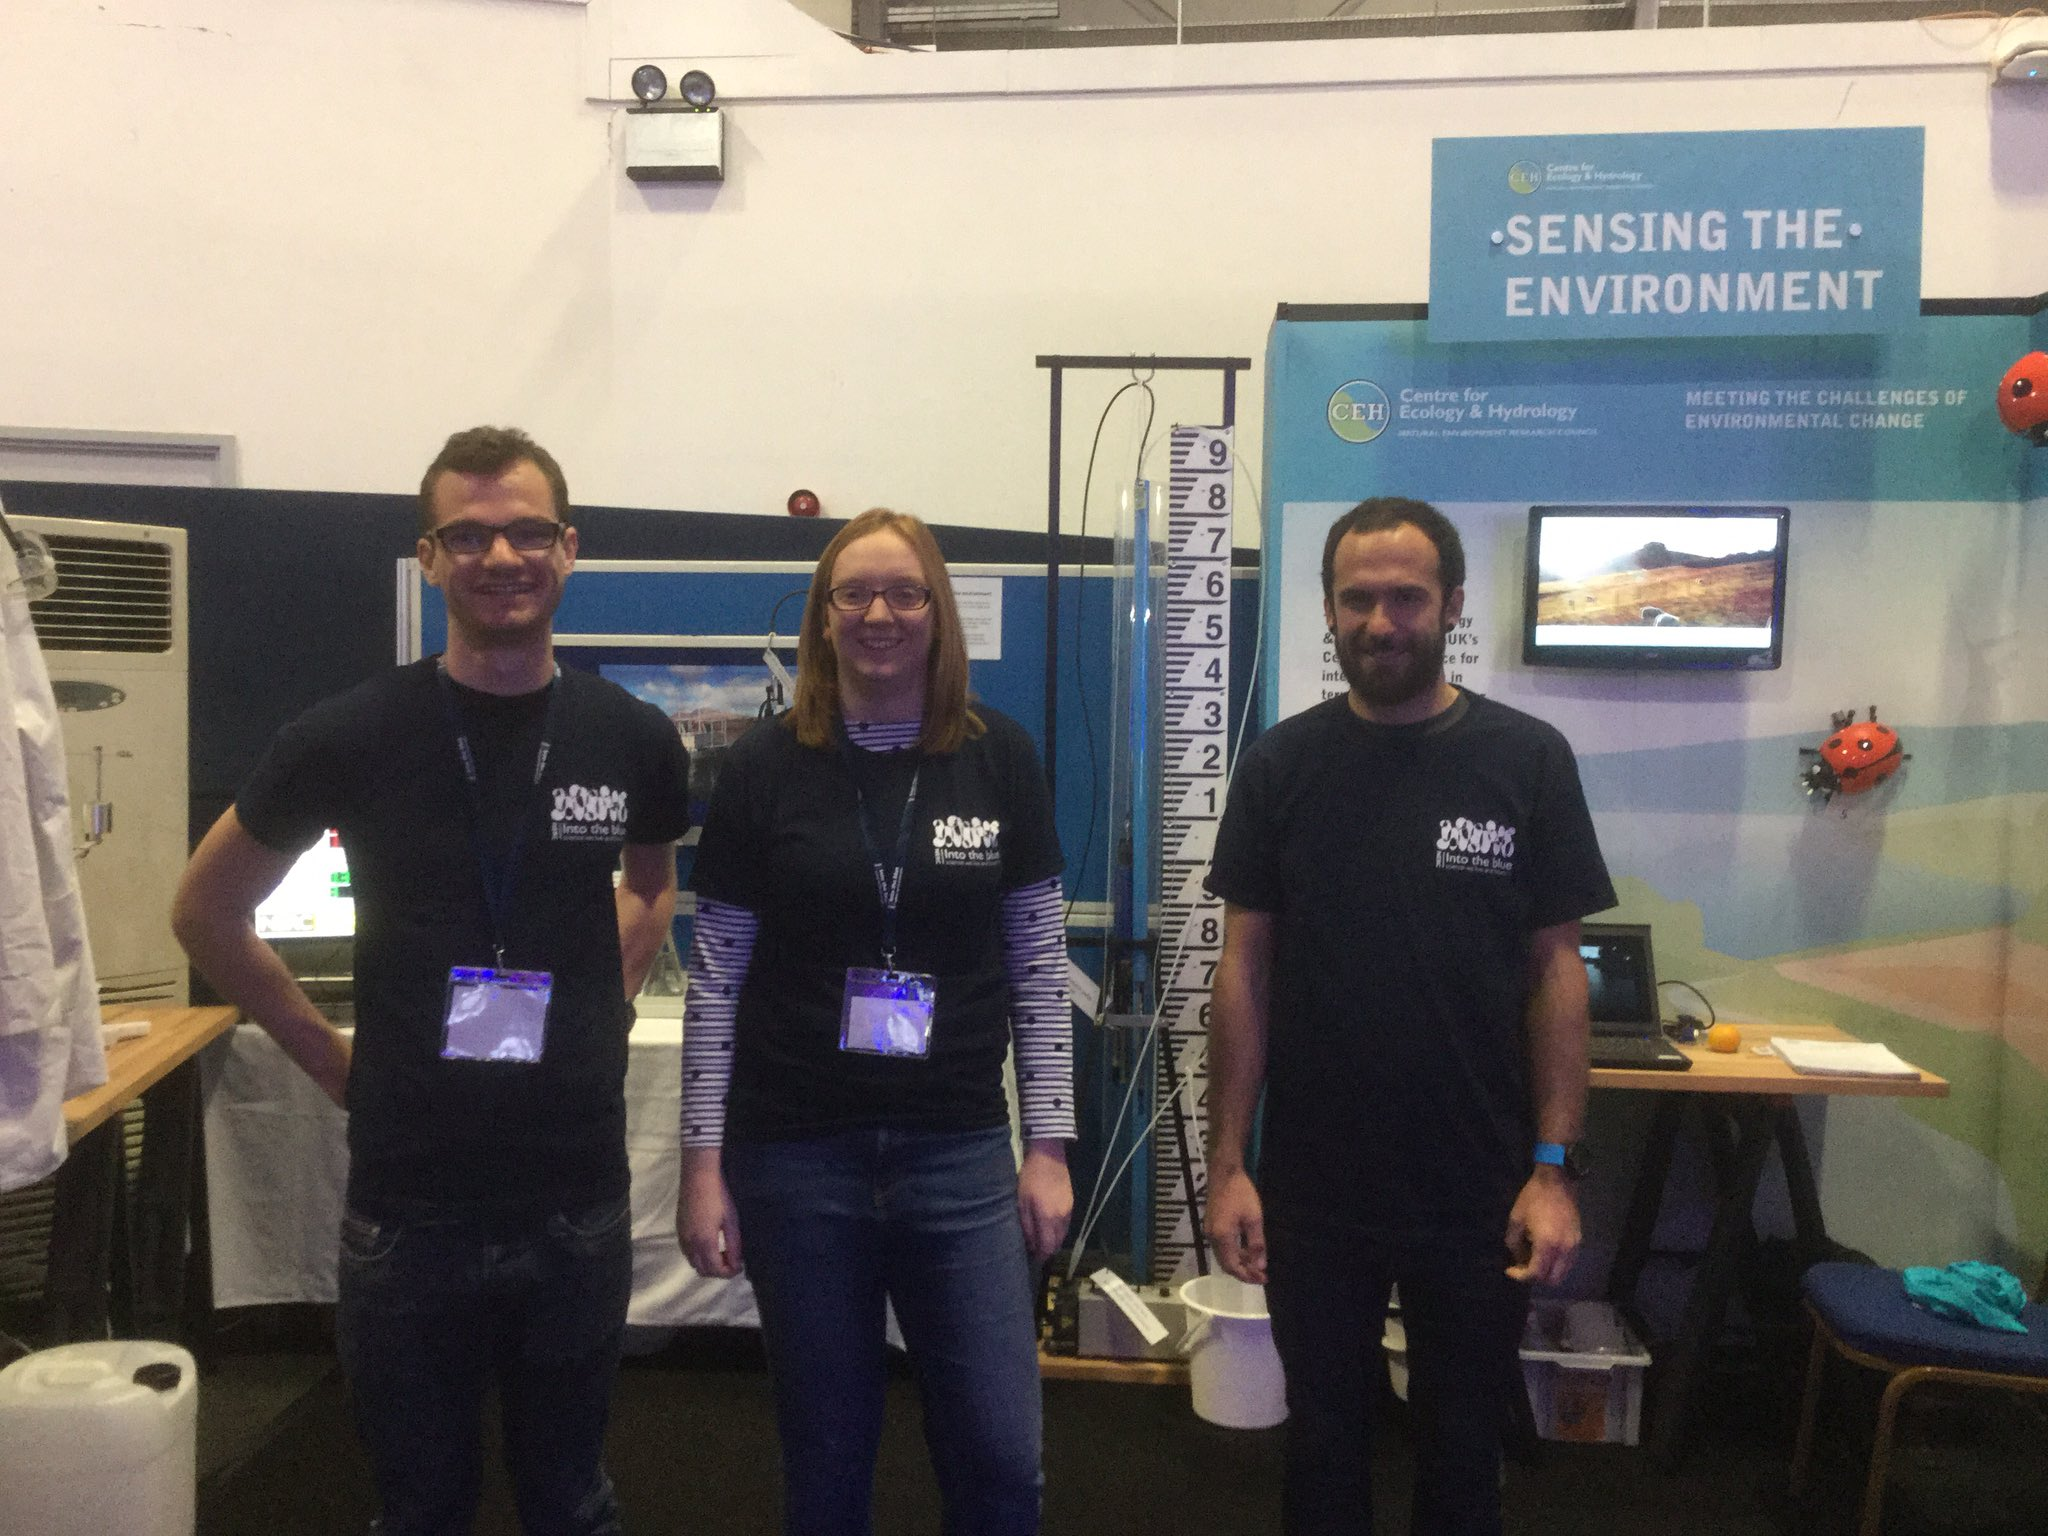 'Sensing the Environment'  team @CEHScienceNews open for business, day 3 #nercintotheblue looking forward to hoards of visitors! https://t.co/YW0zNJl6dt